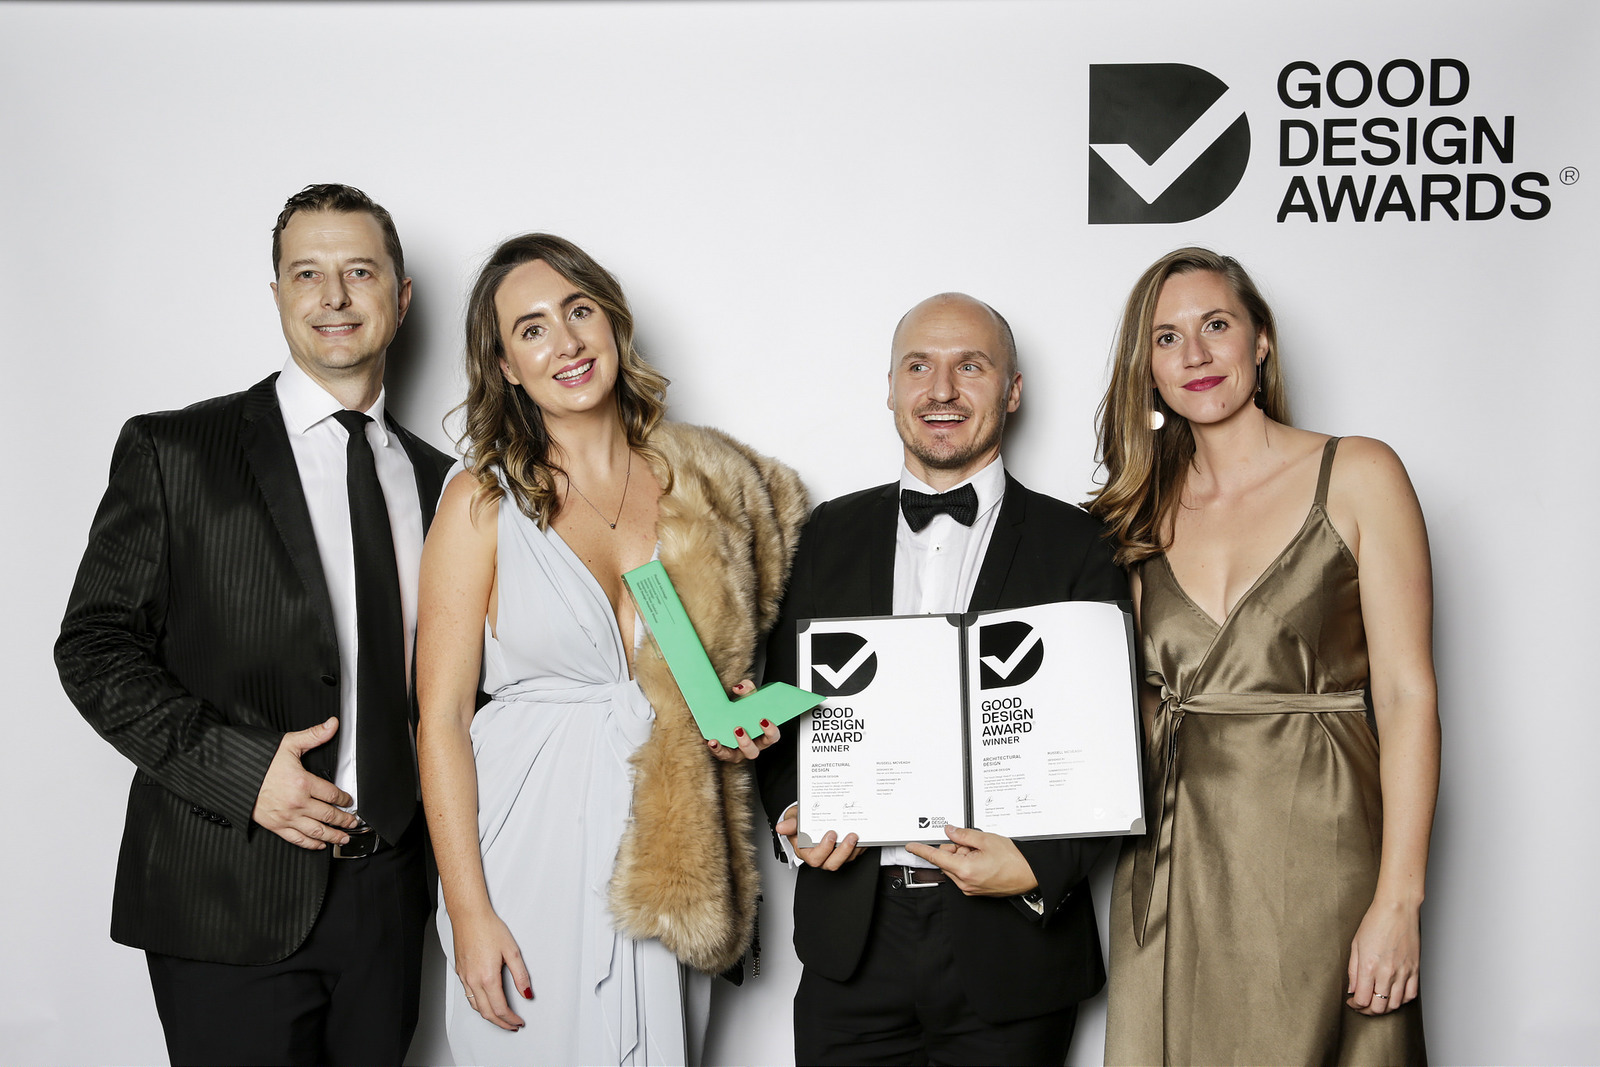 Warren and Mahoney wins consecutive Good Design Award for open-plan legal workplace